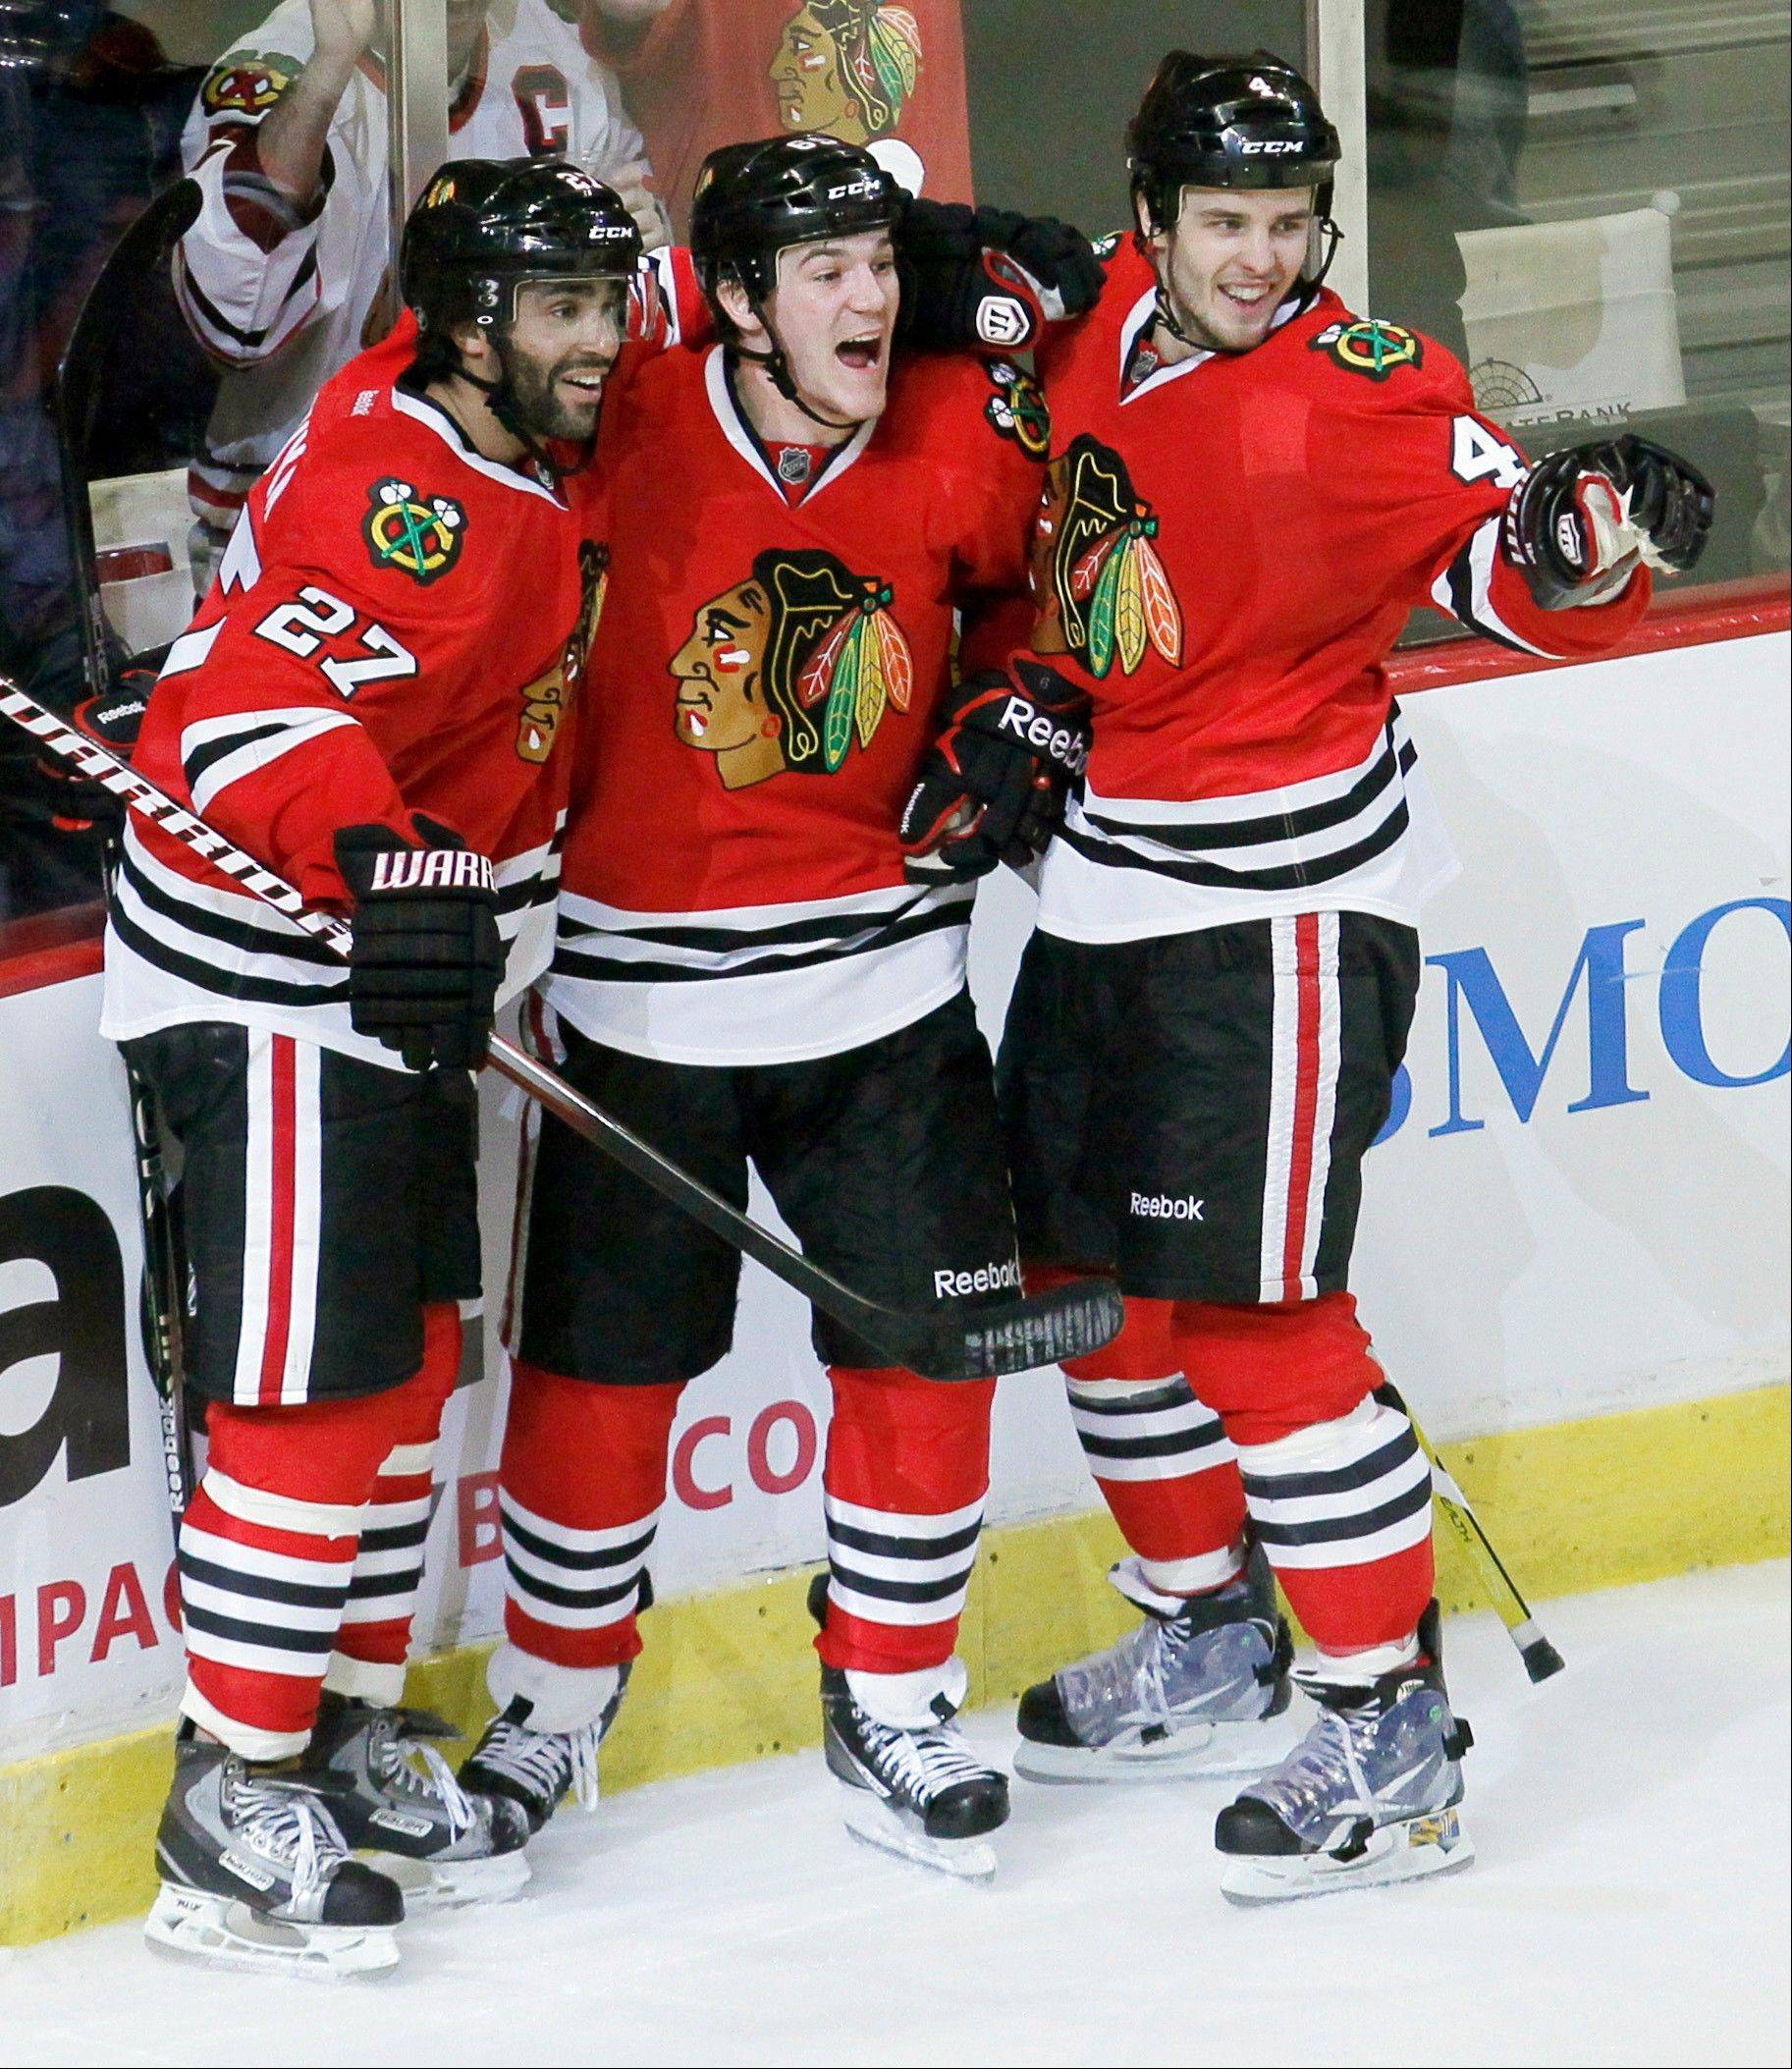 The Blackhawks' Andrew Shaw, center, celebrates his game-winning overtime goal Wednesday with Johnny Oduya (27) and Niklas Hjalmarsson.